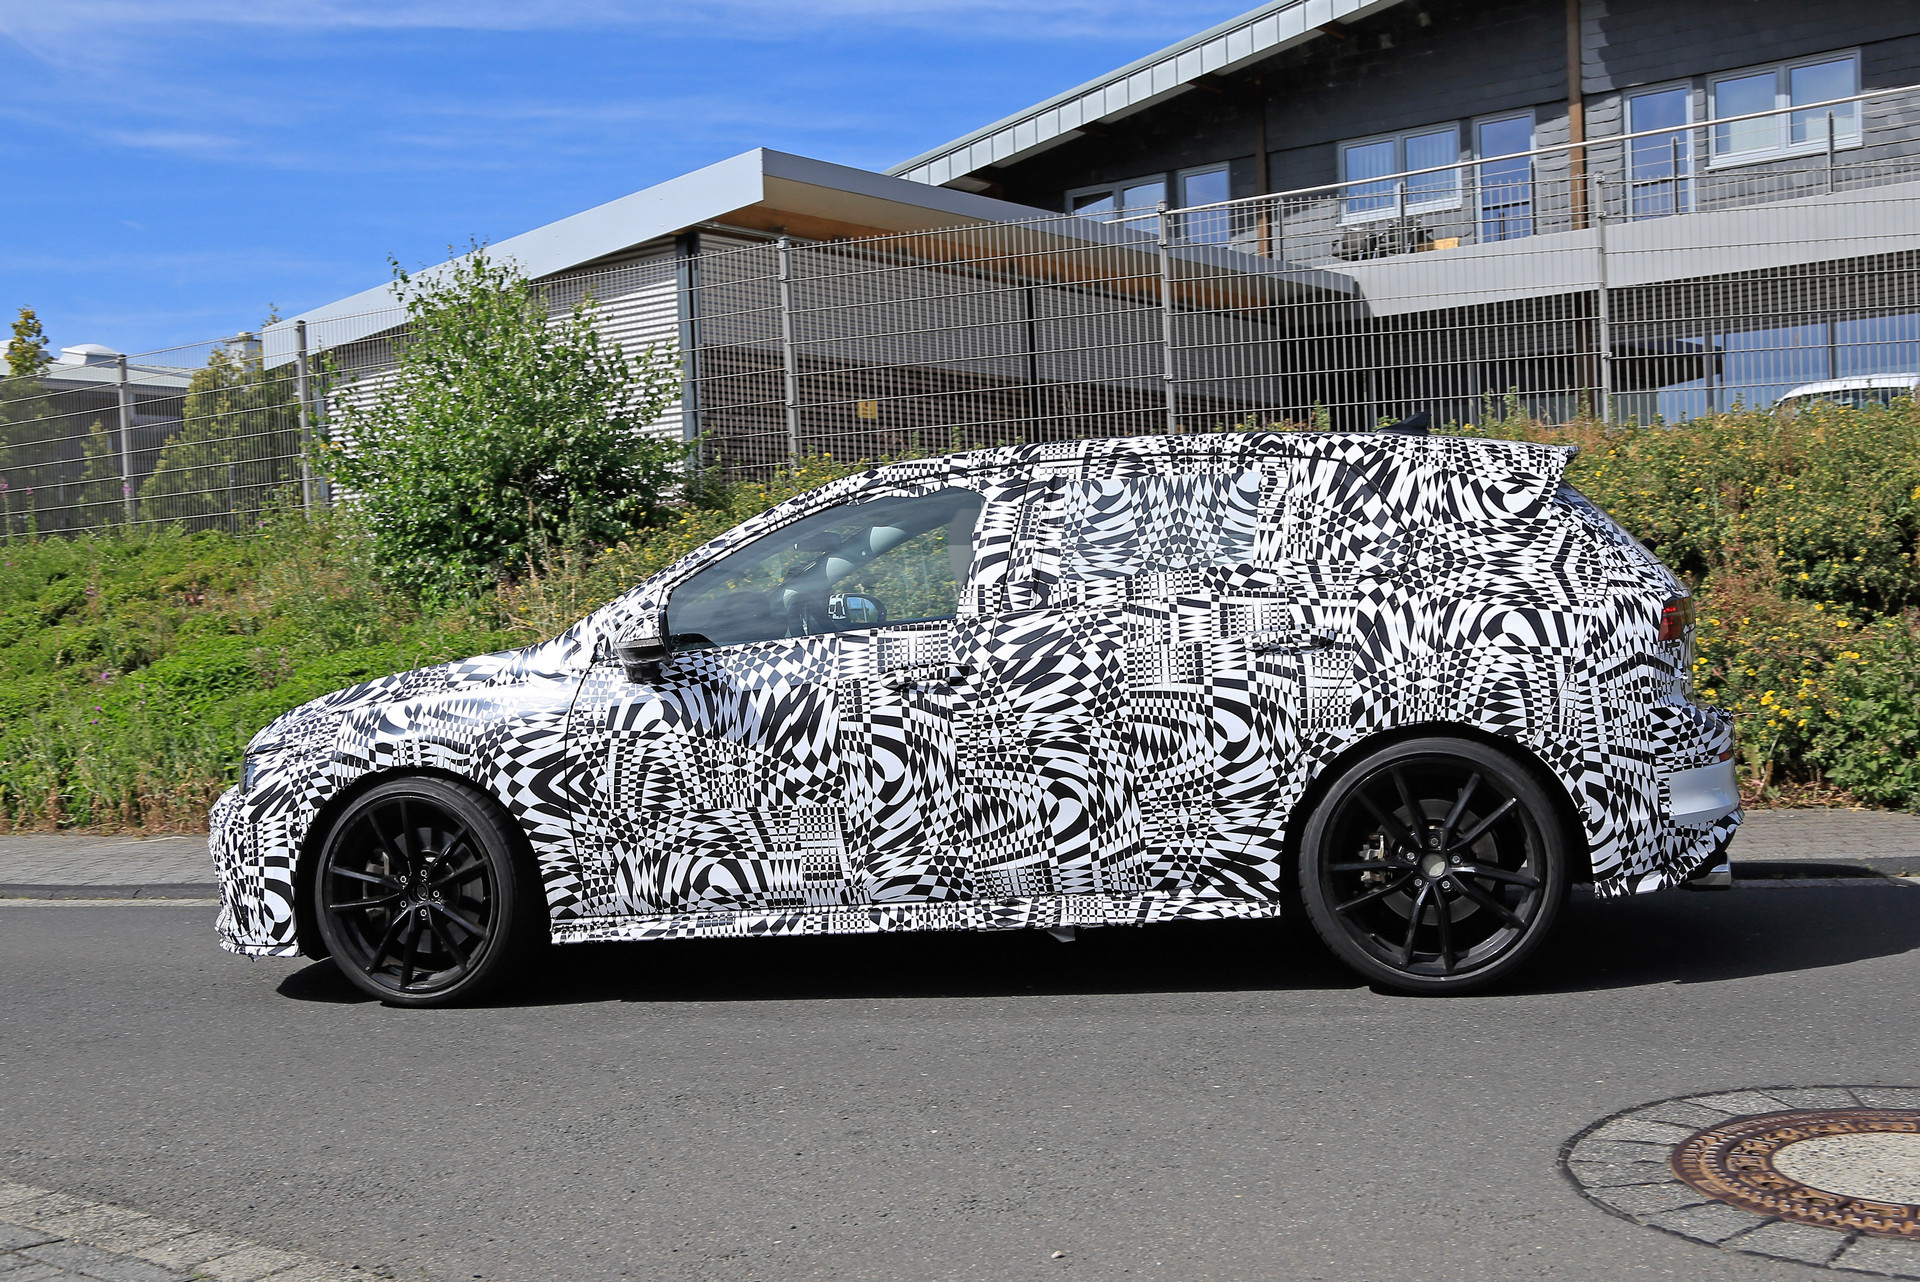 Formacar First Spy Shots Reveal The Exterior Of The Vw Golf 8 Gti